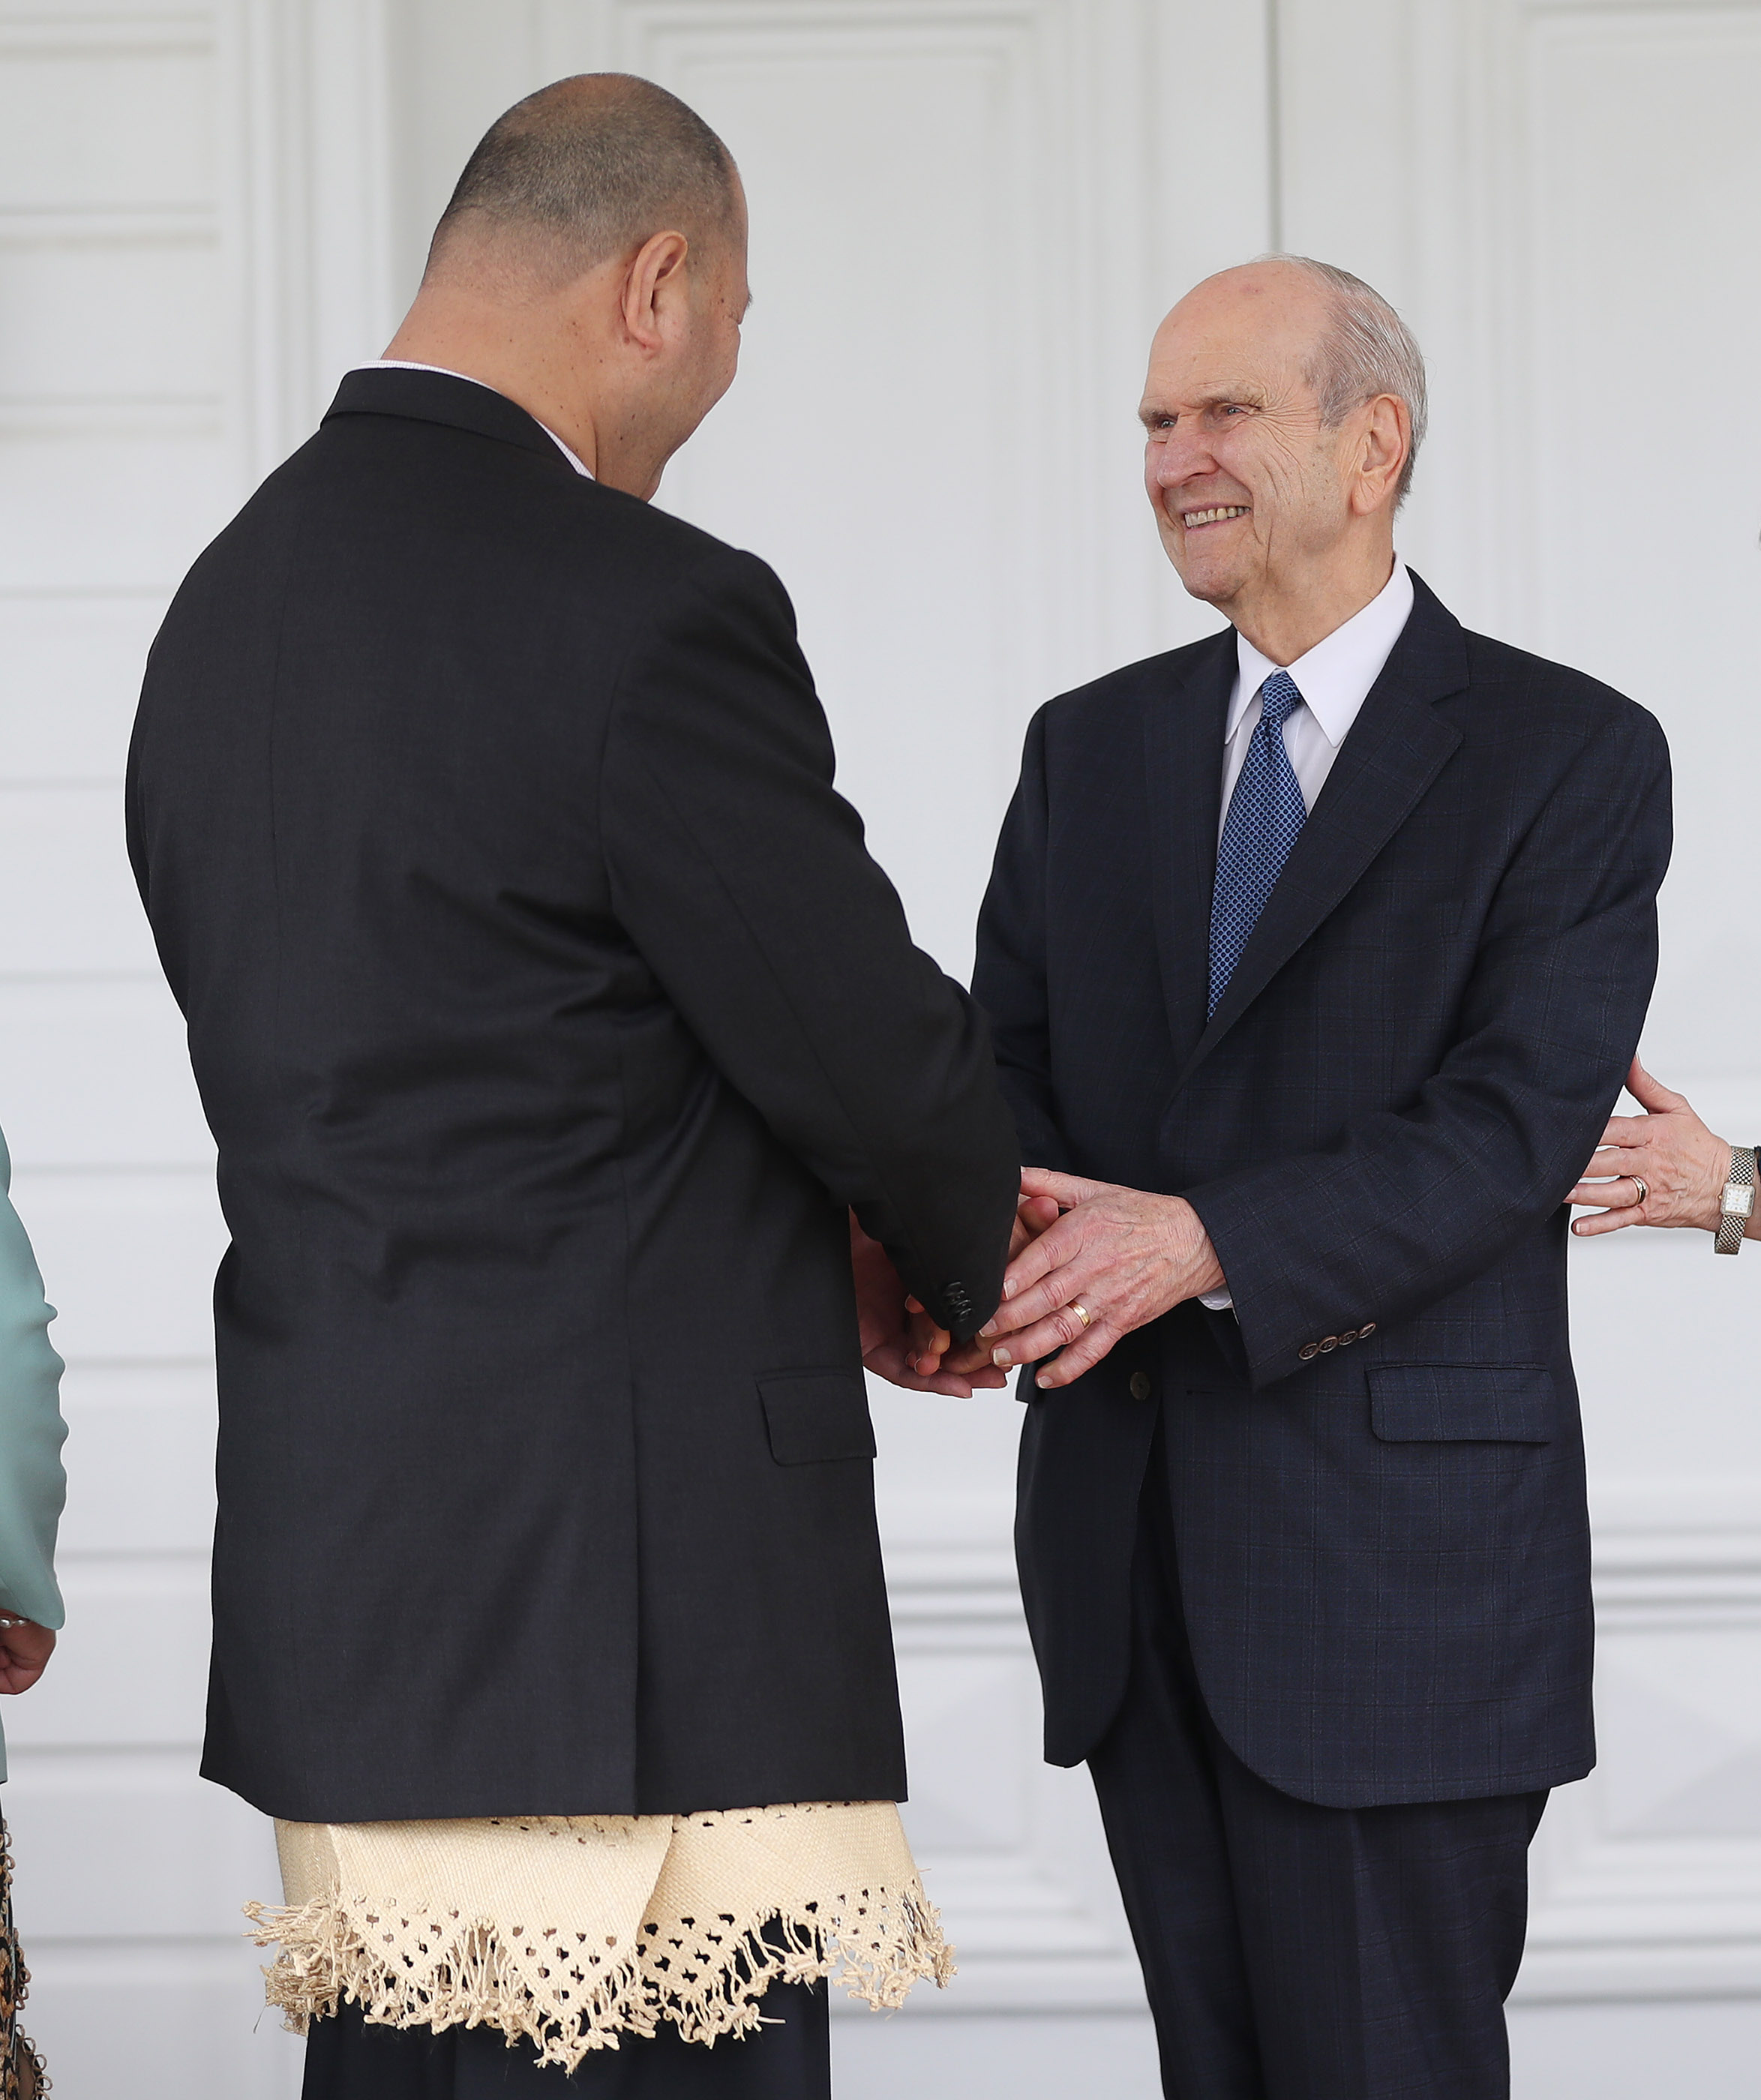 President Russell M. Nelson of The Church of Jesus Christ of Latter-day Saints meets with His Majesty King Tupou VI, King of Tonga, at the Royal Palace in Tonga on May 23, 2019.